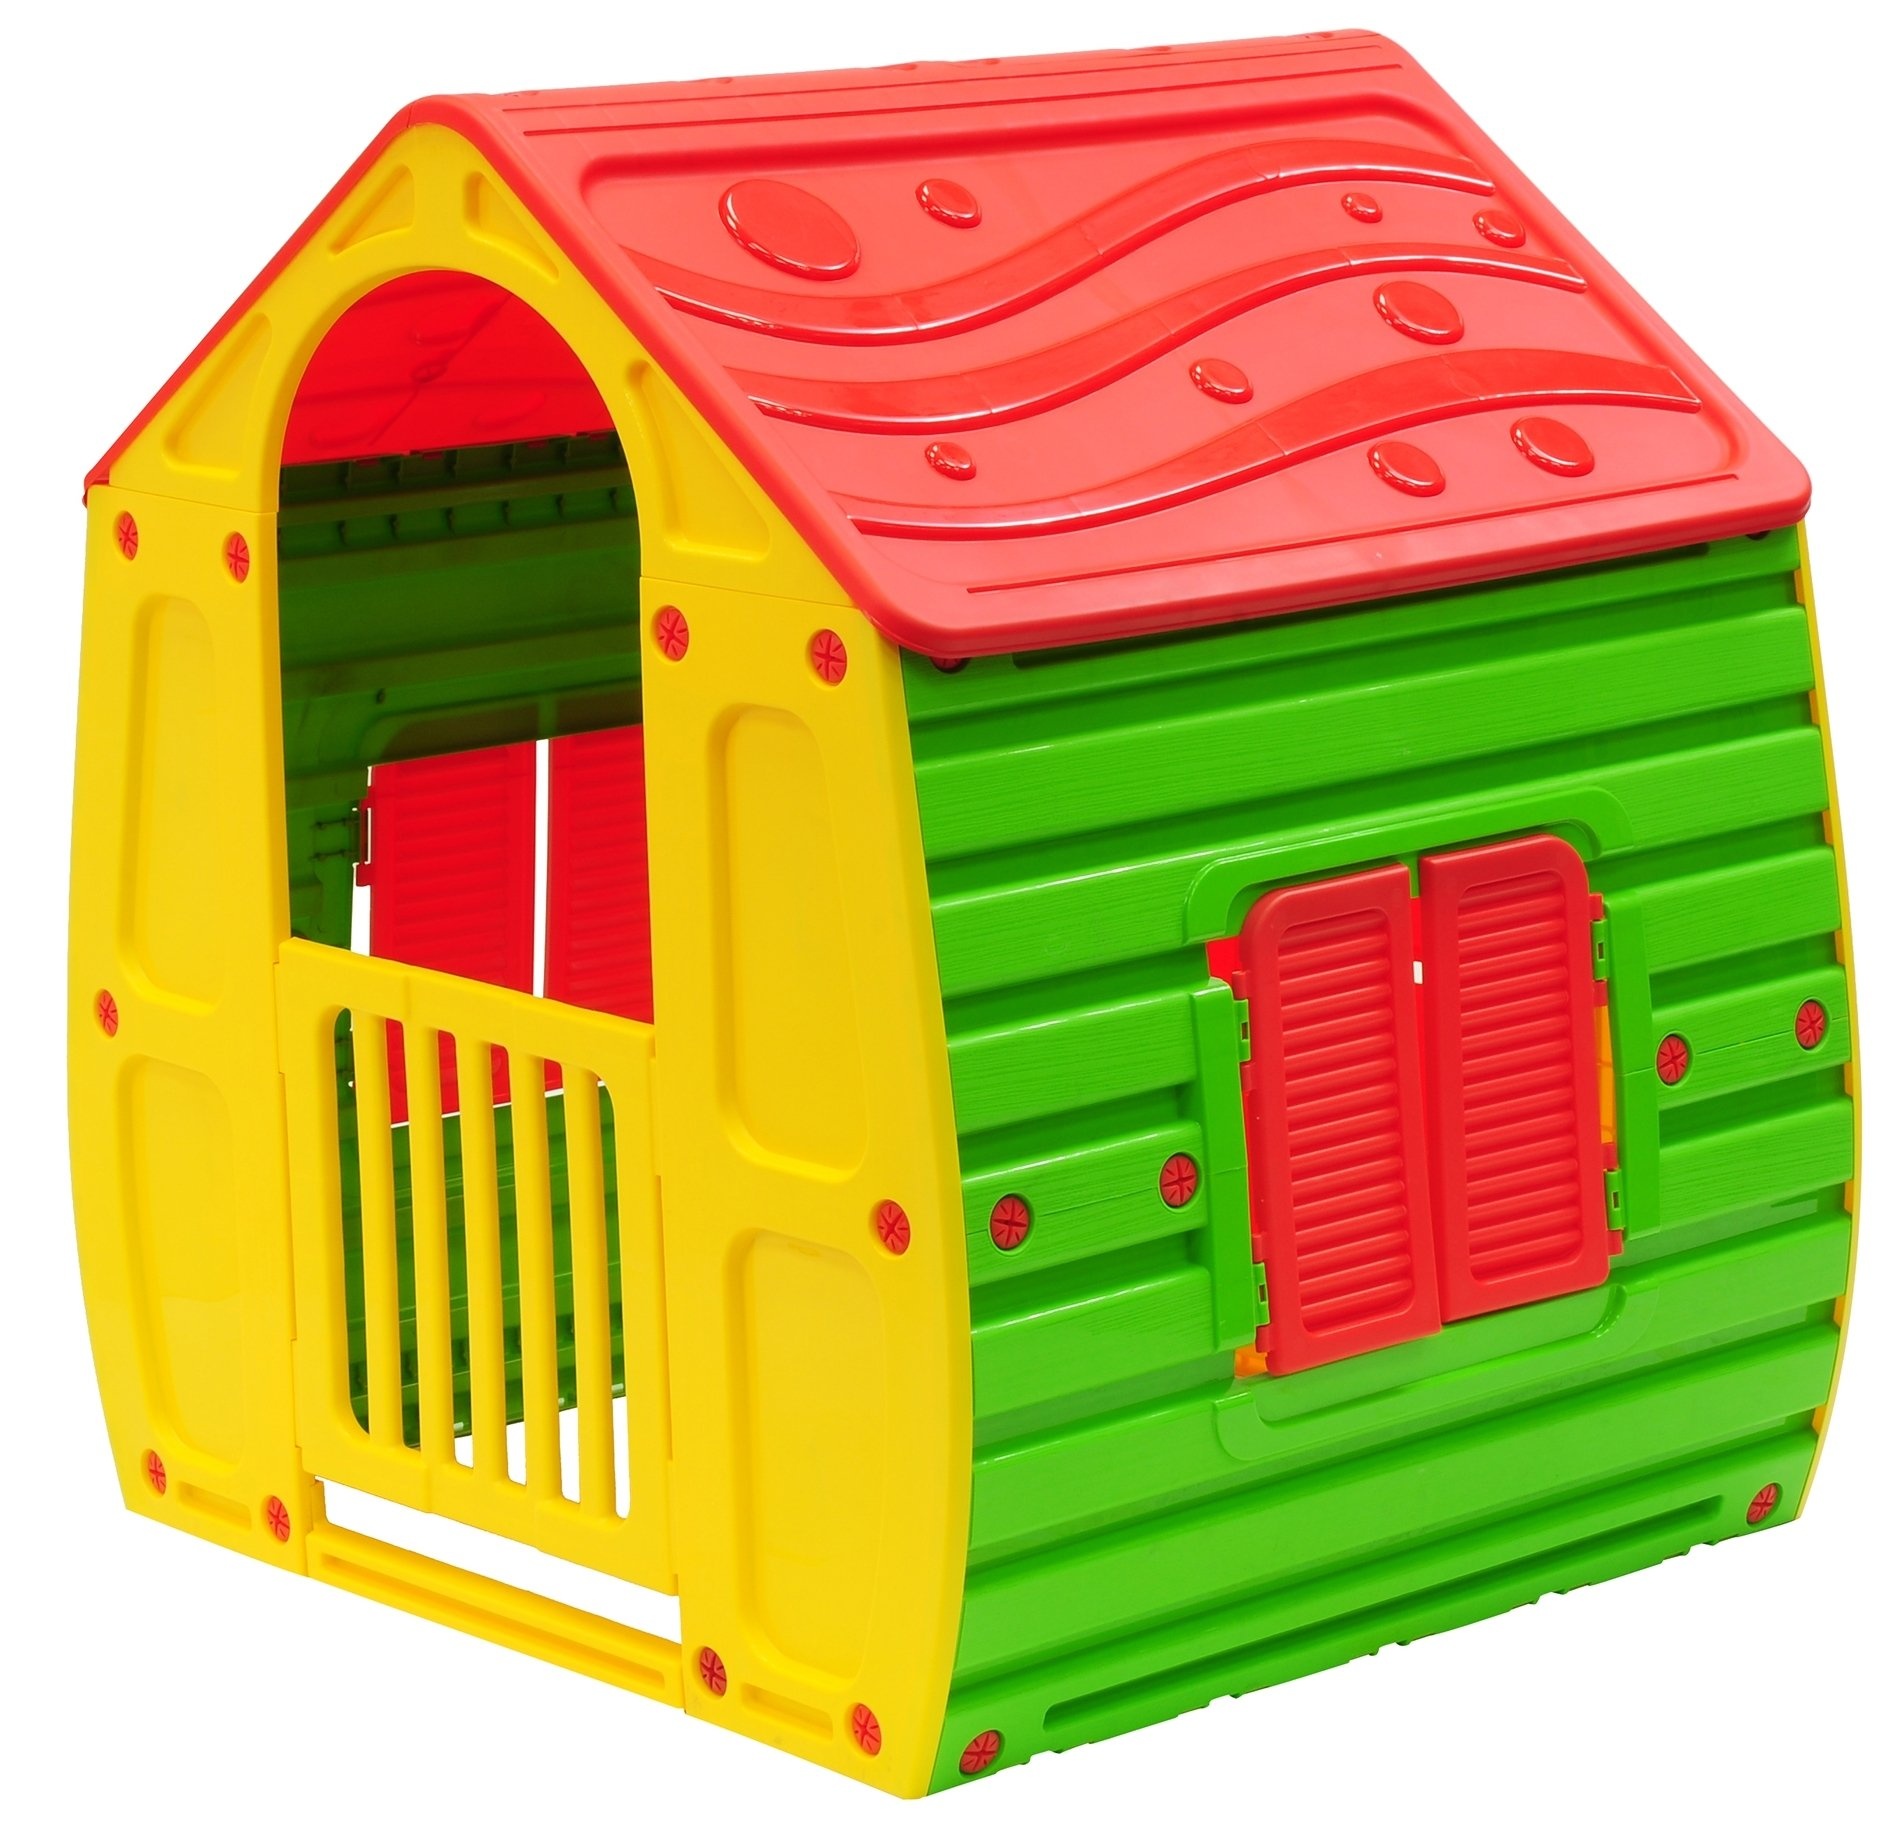 Starplay Magical Playhouse, Primary Color Combination/Red/Green/Yellow